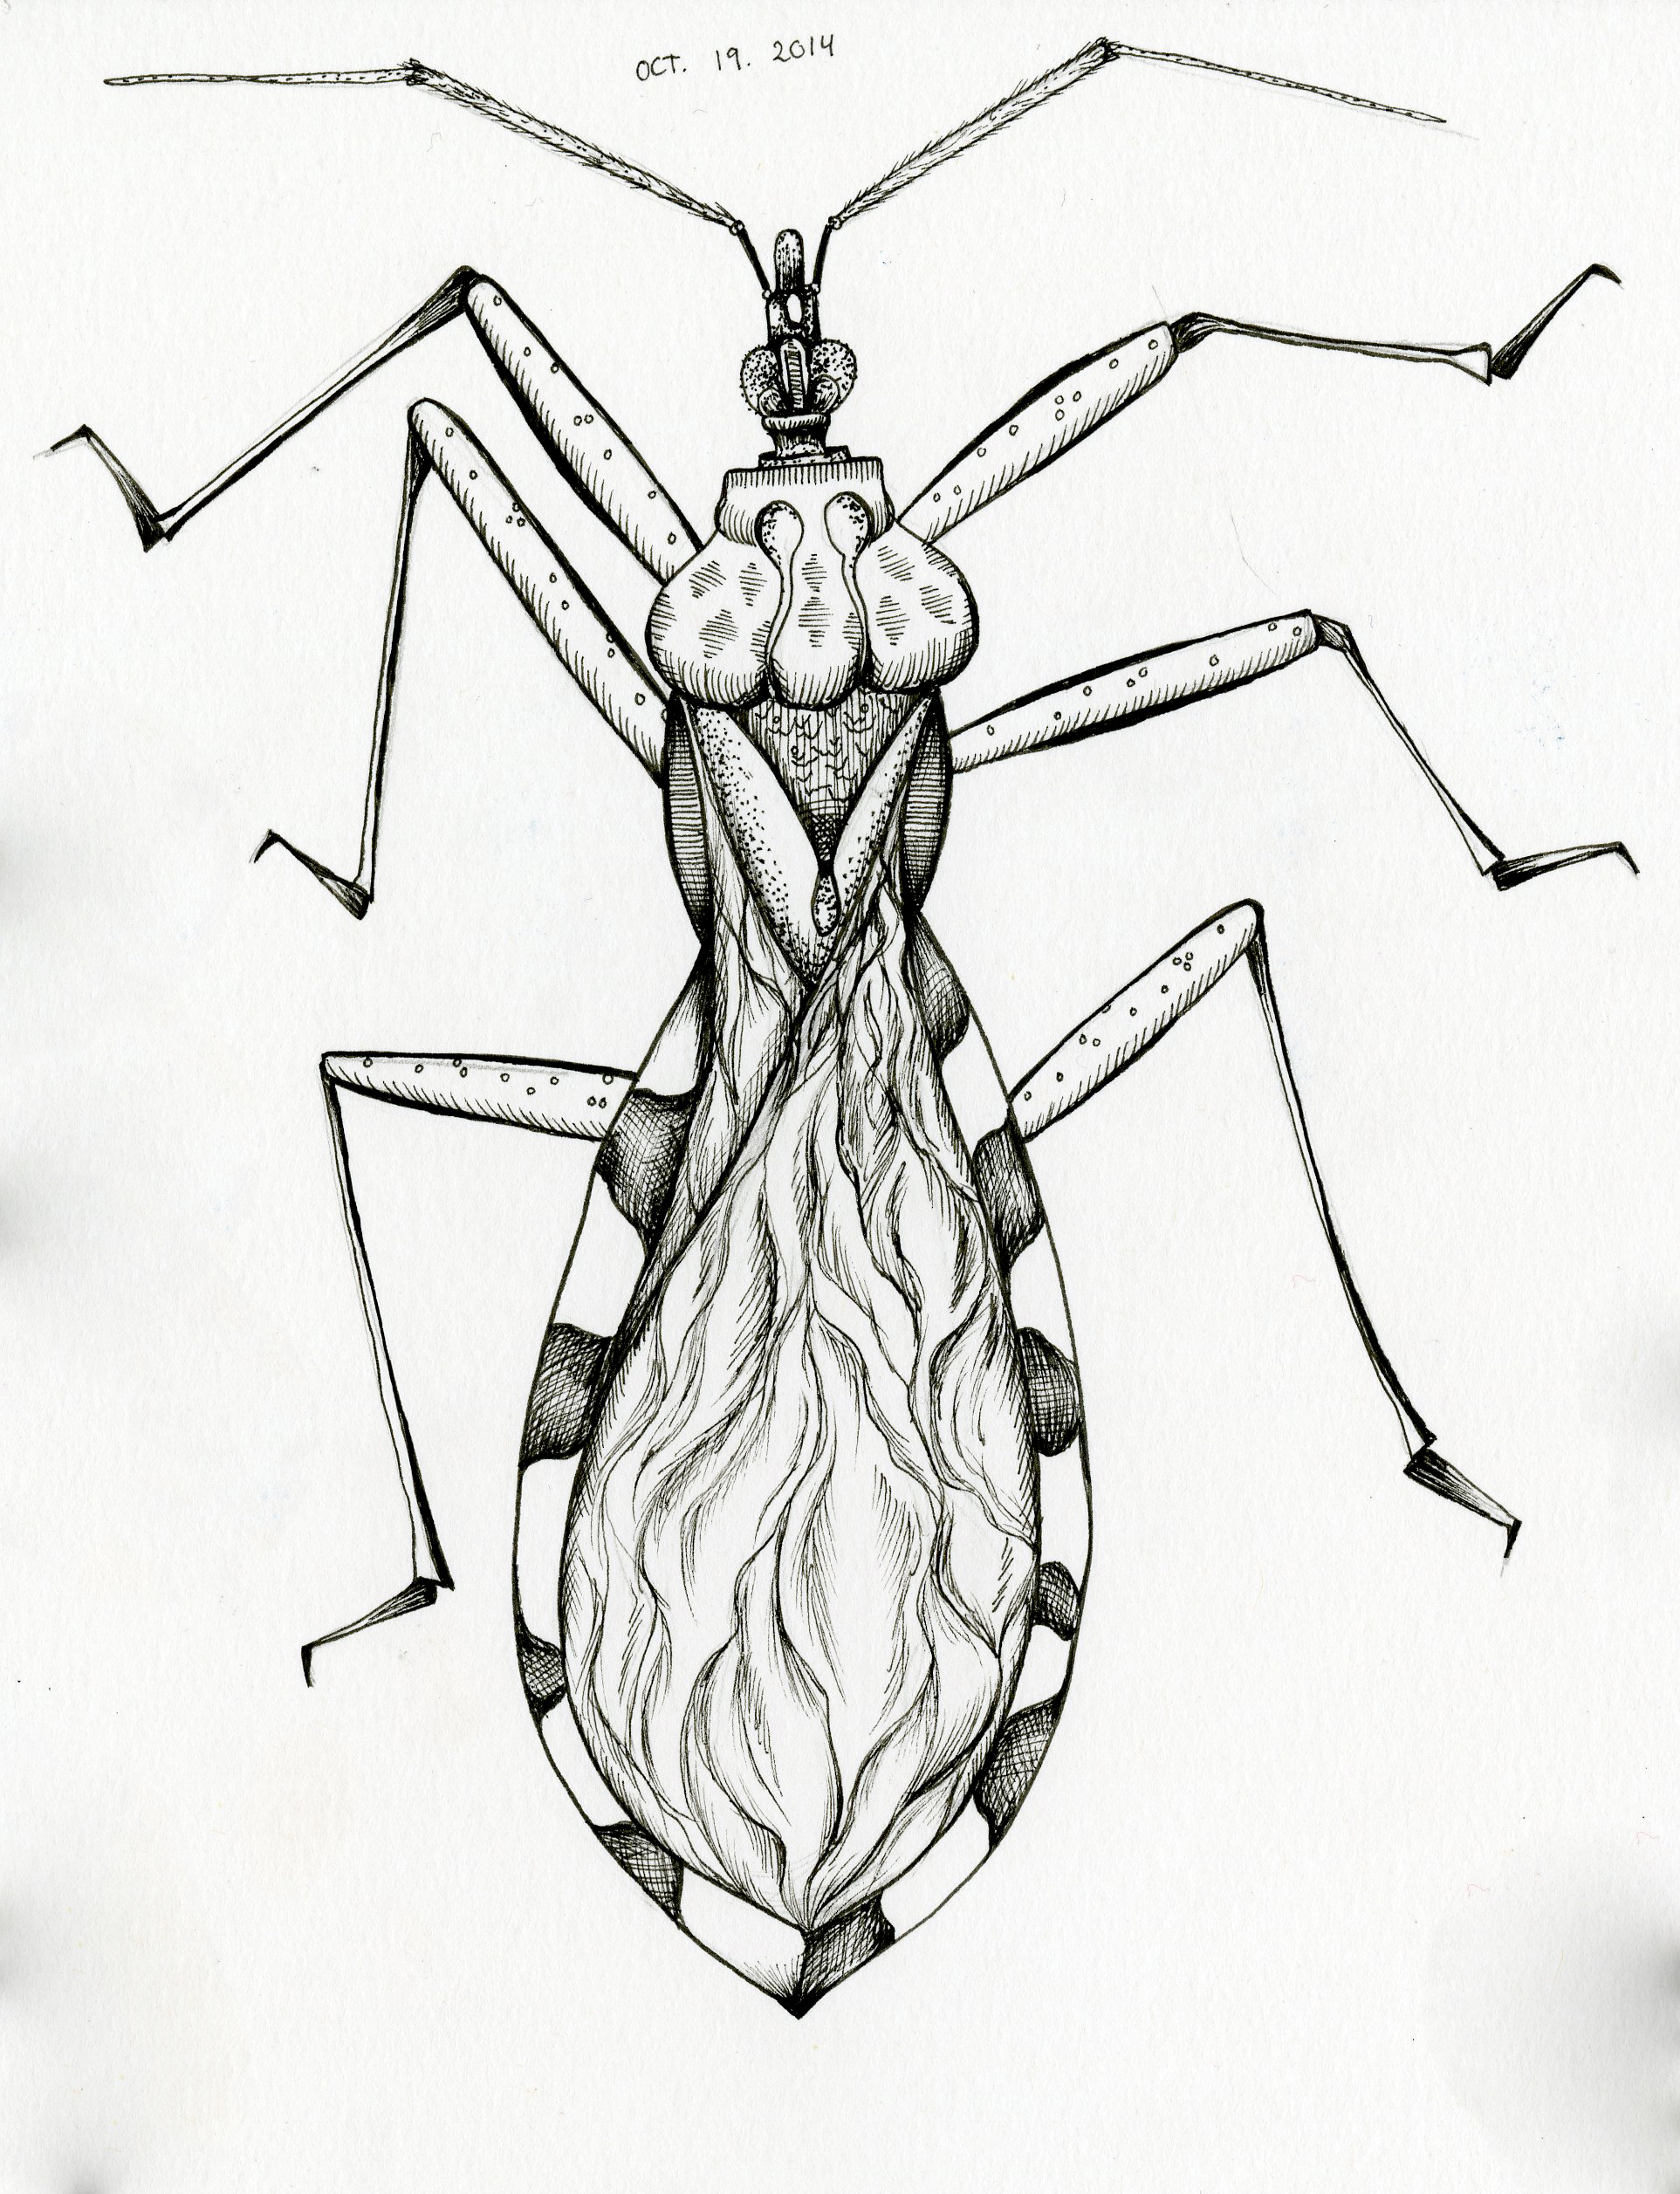 Inktober 19 – Anotherinsect!